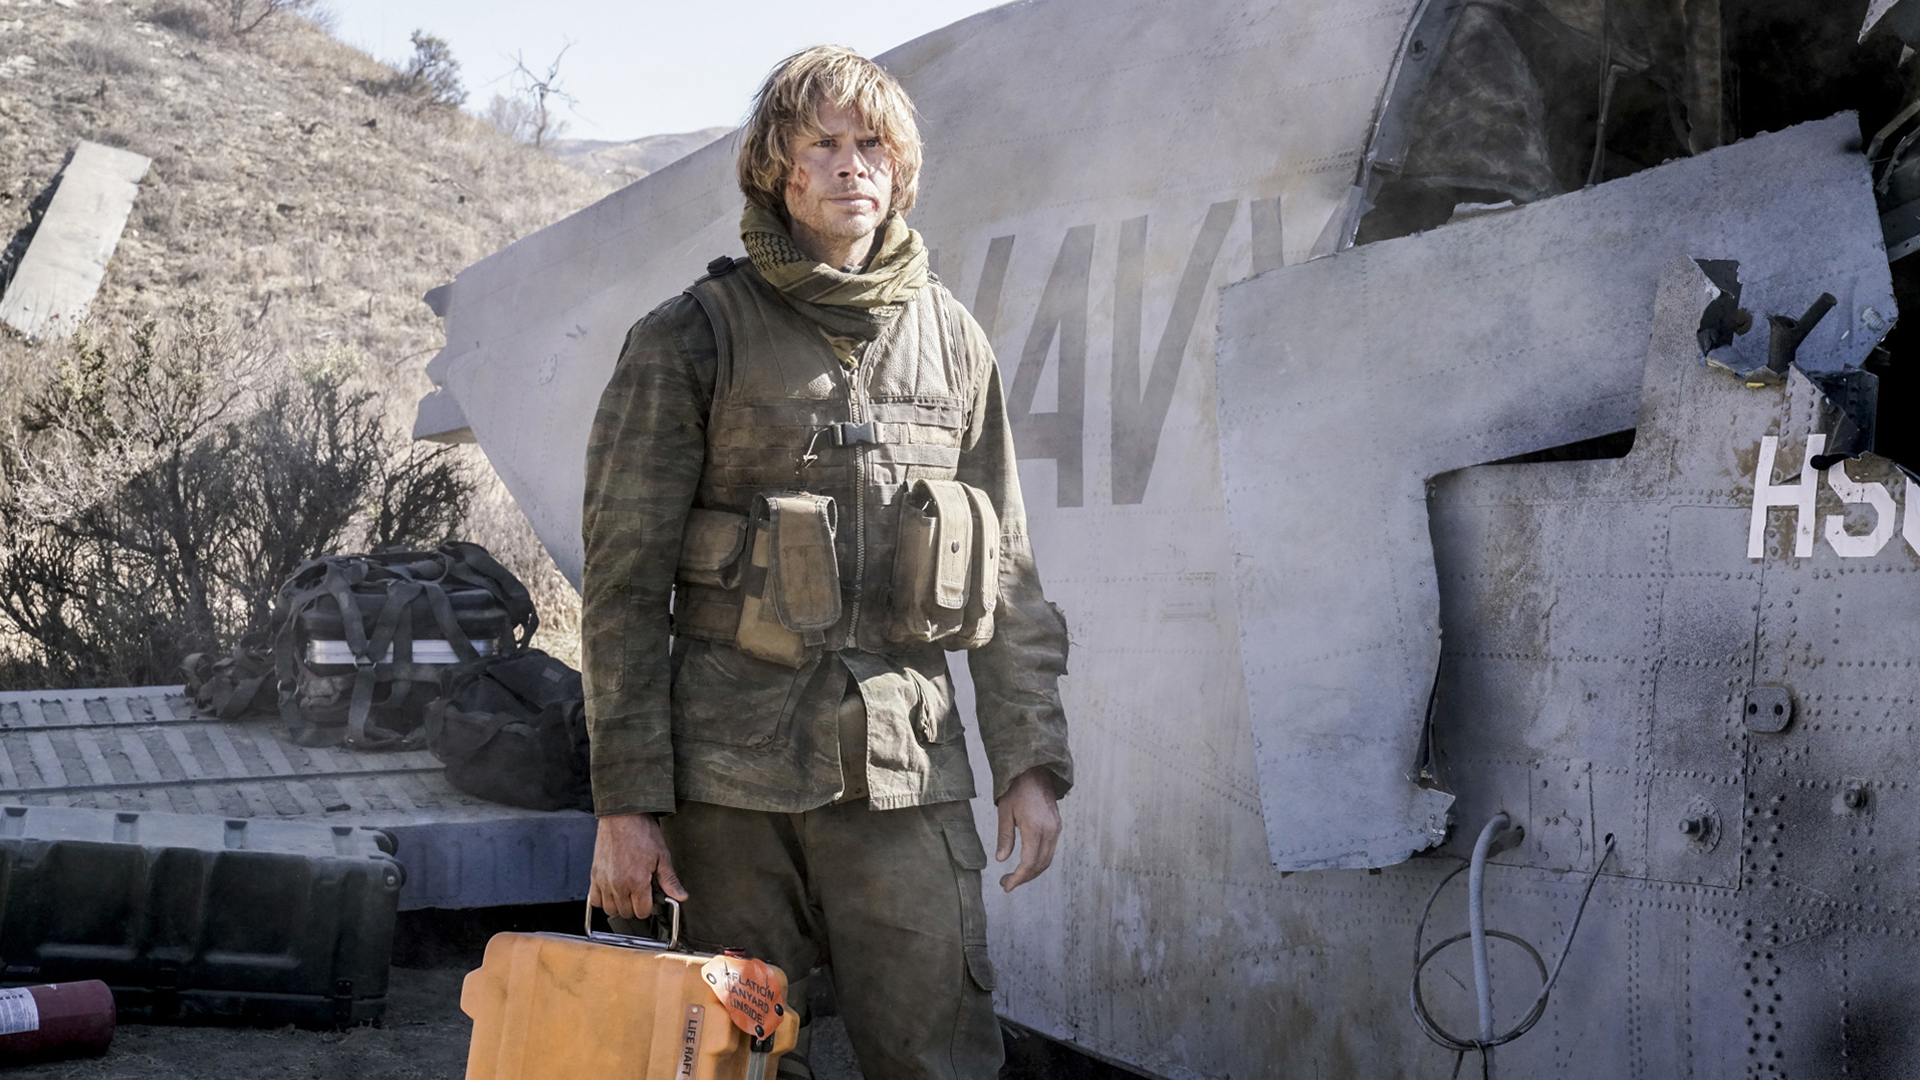 Deeks grabs some gear to get out of danger.